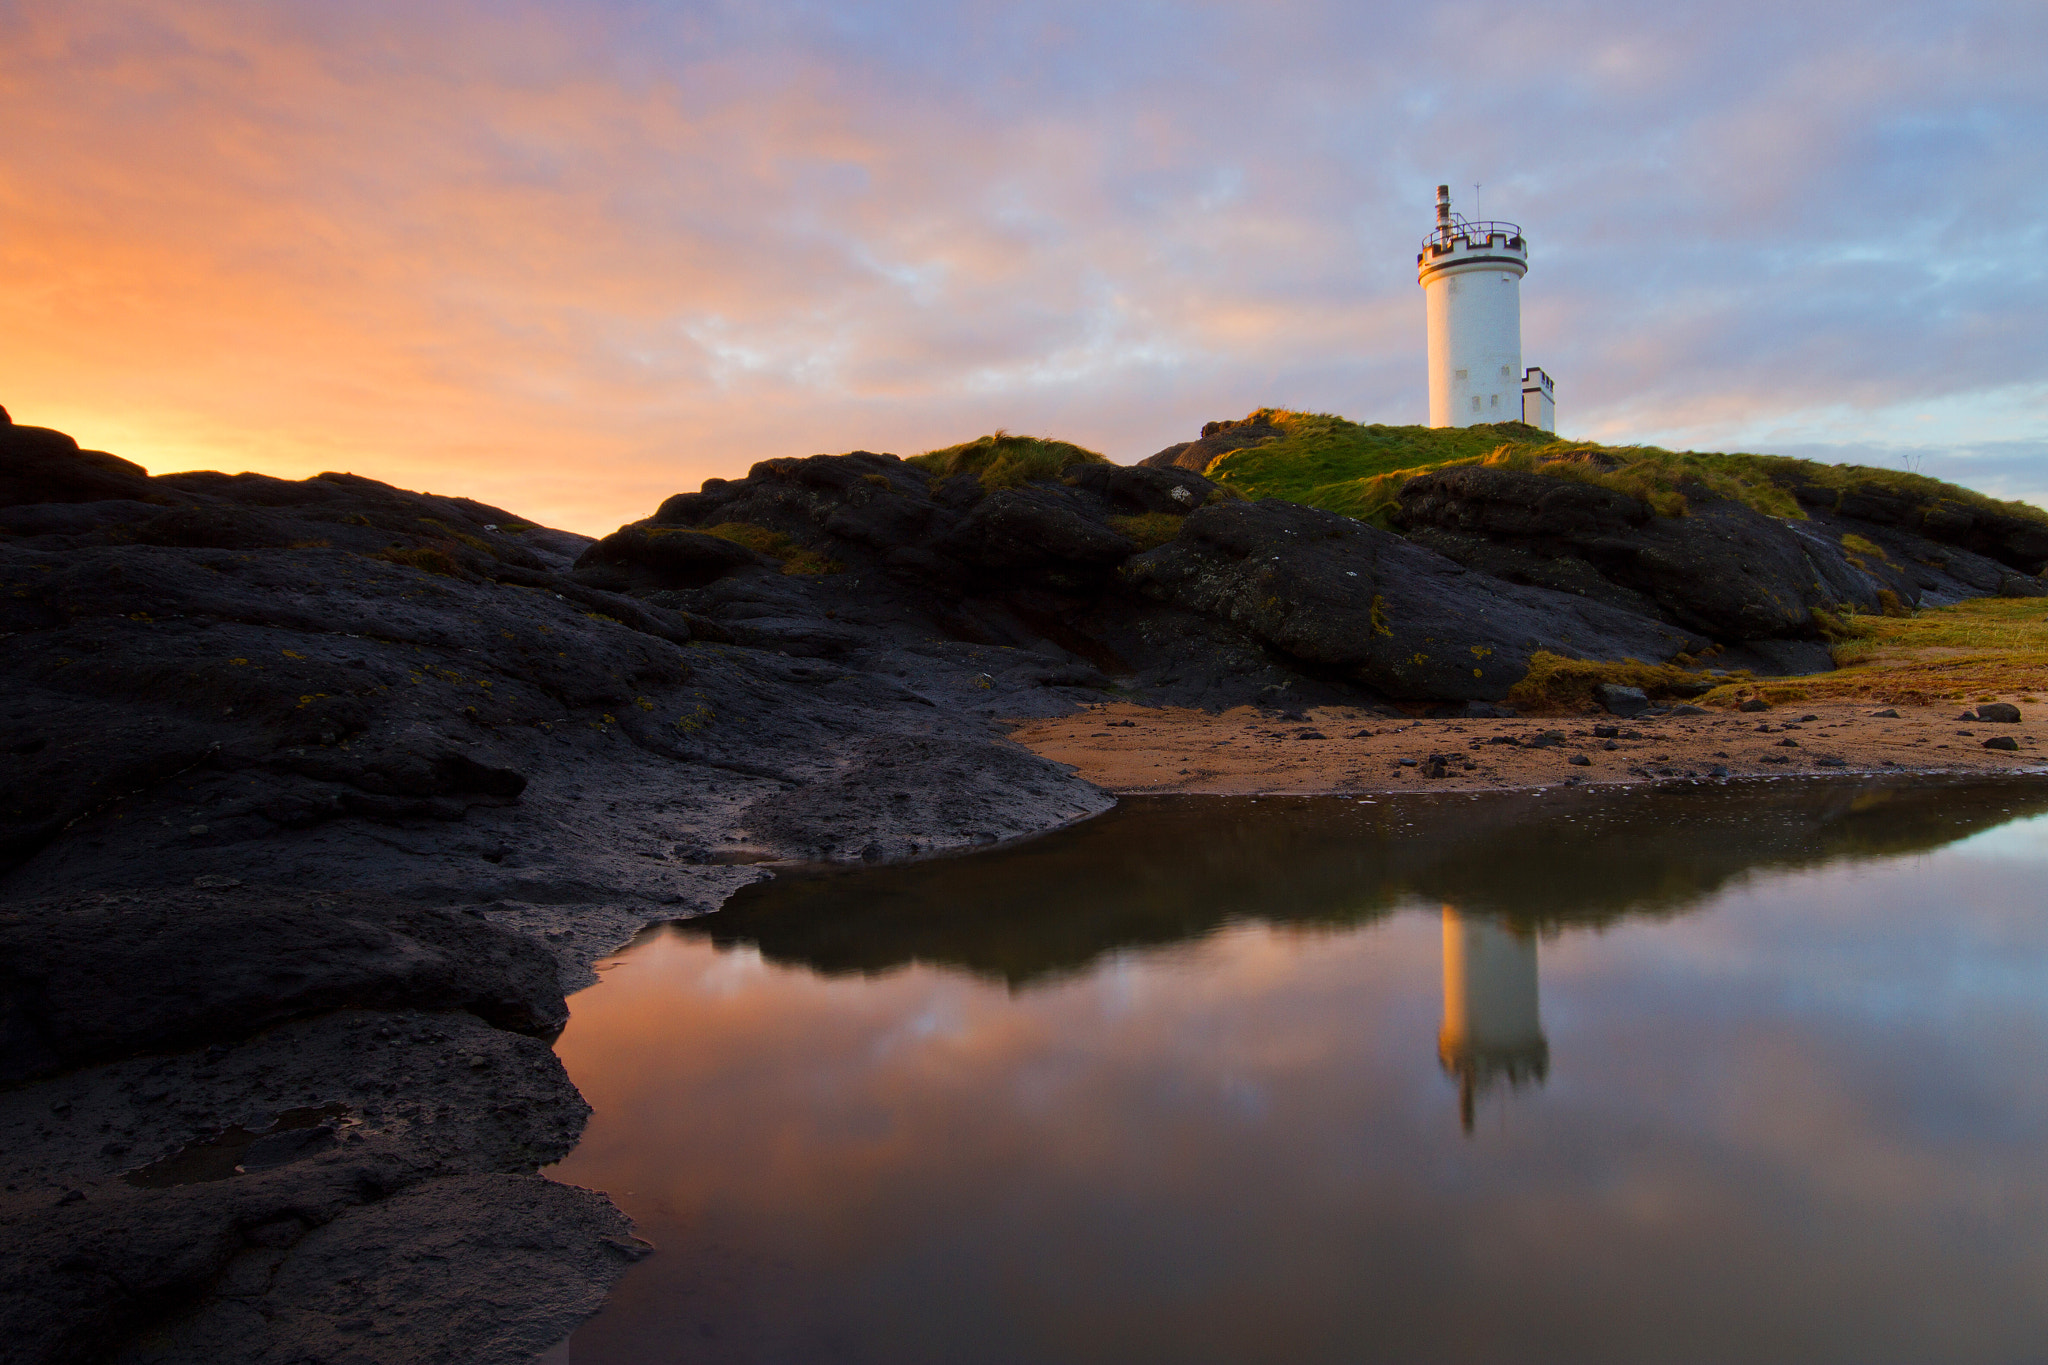 Photograph Lighting Up The Lighthouse by Simon Cameron on 500px